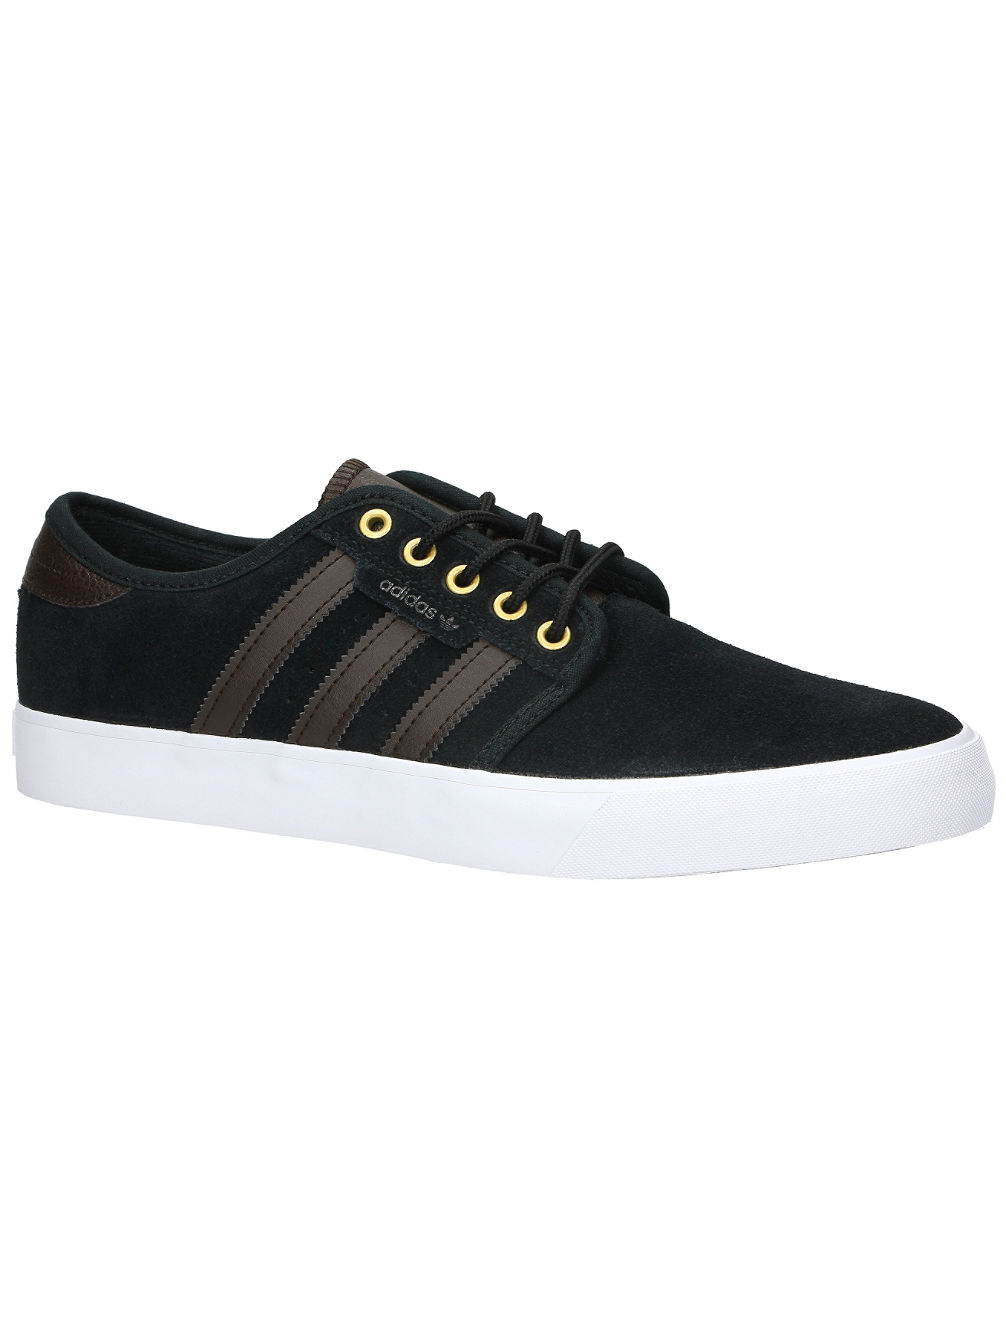 Seeley Skate Shoes